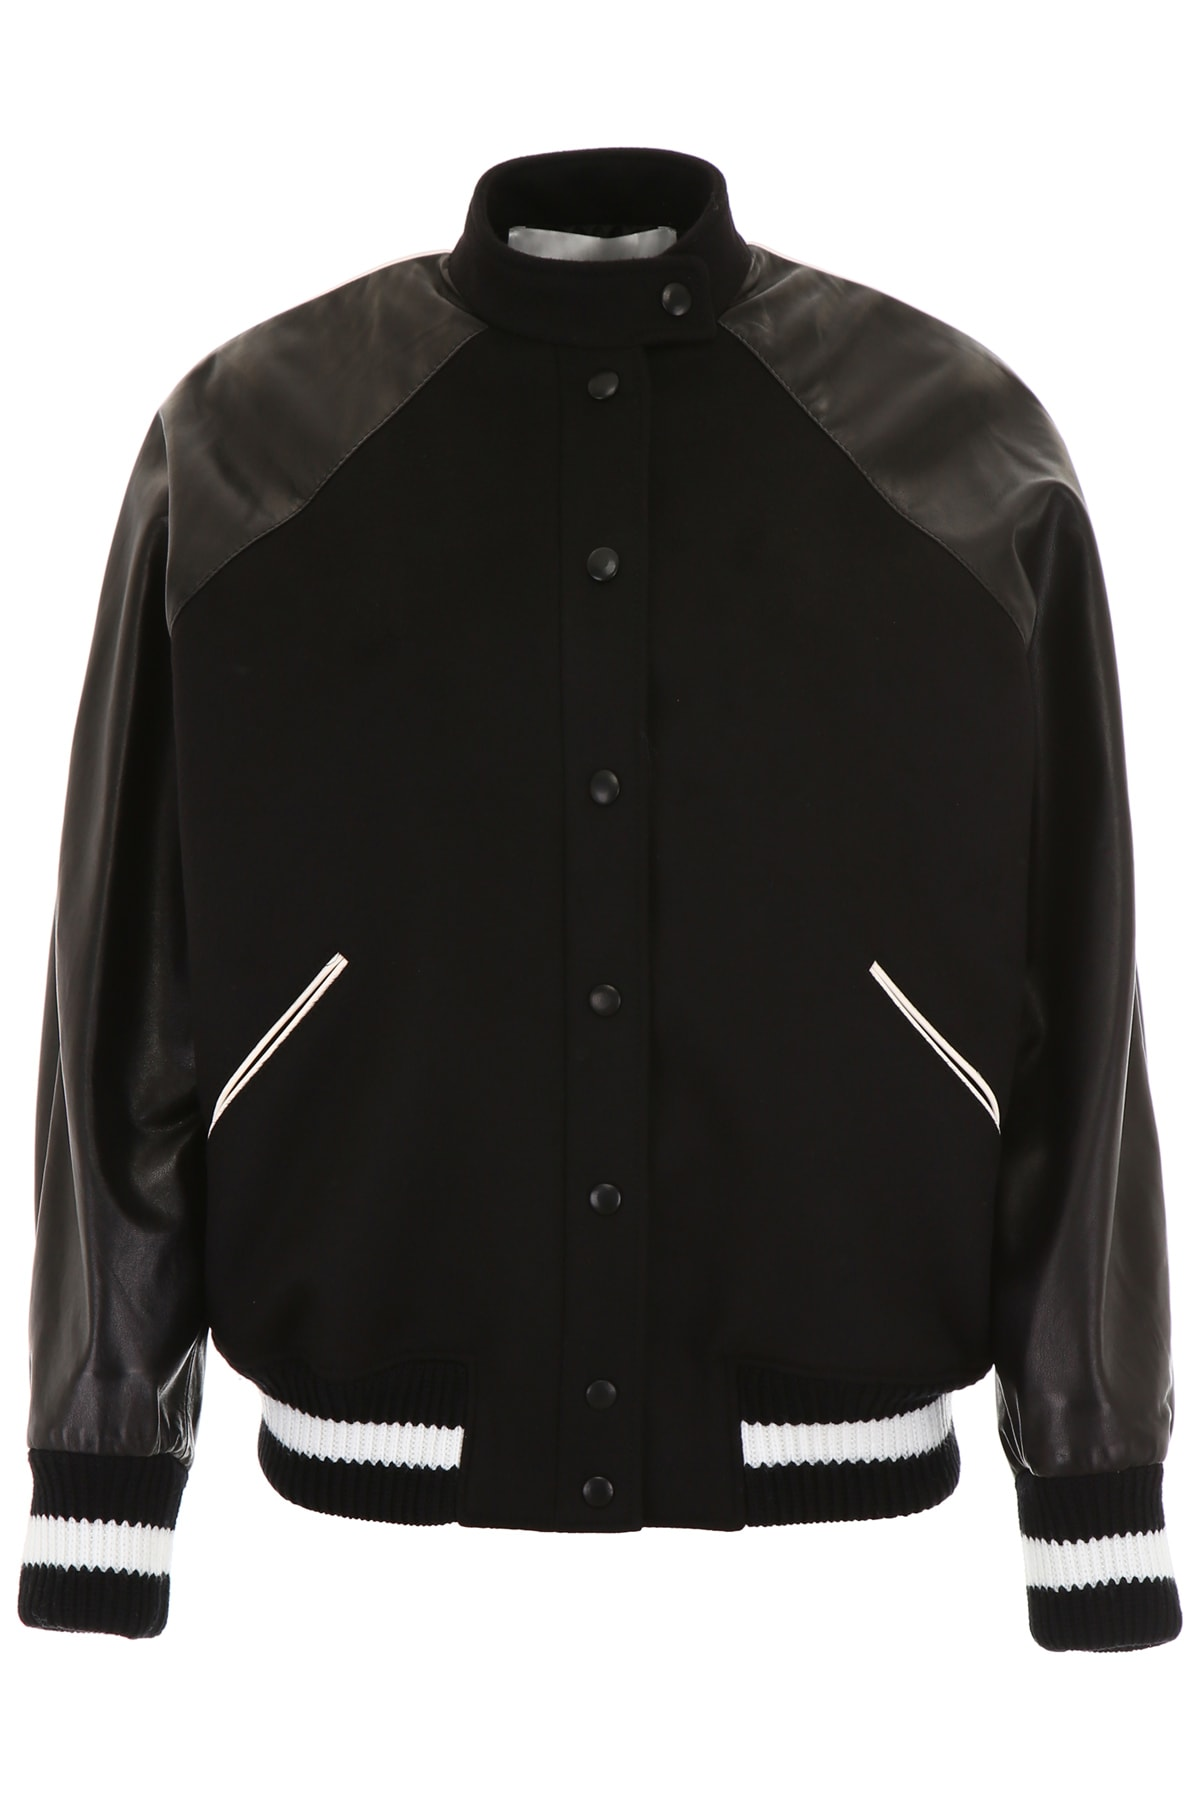 Photo of  Valentino Vltn Bomber Jacket- shop Valentino jackets online sales